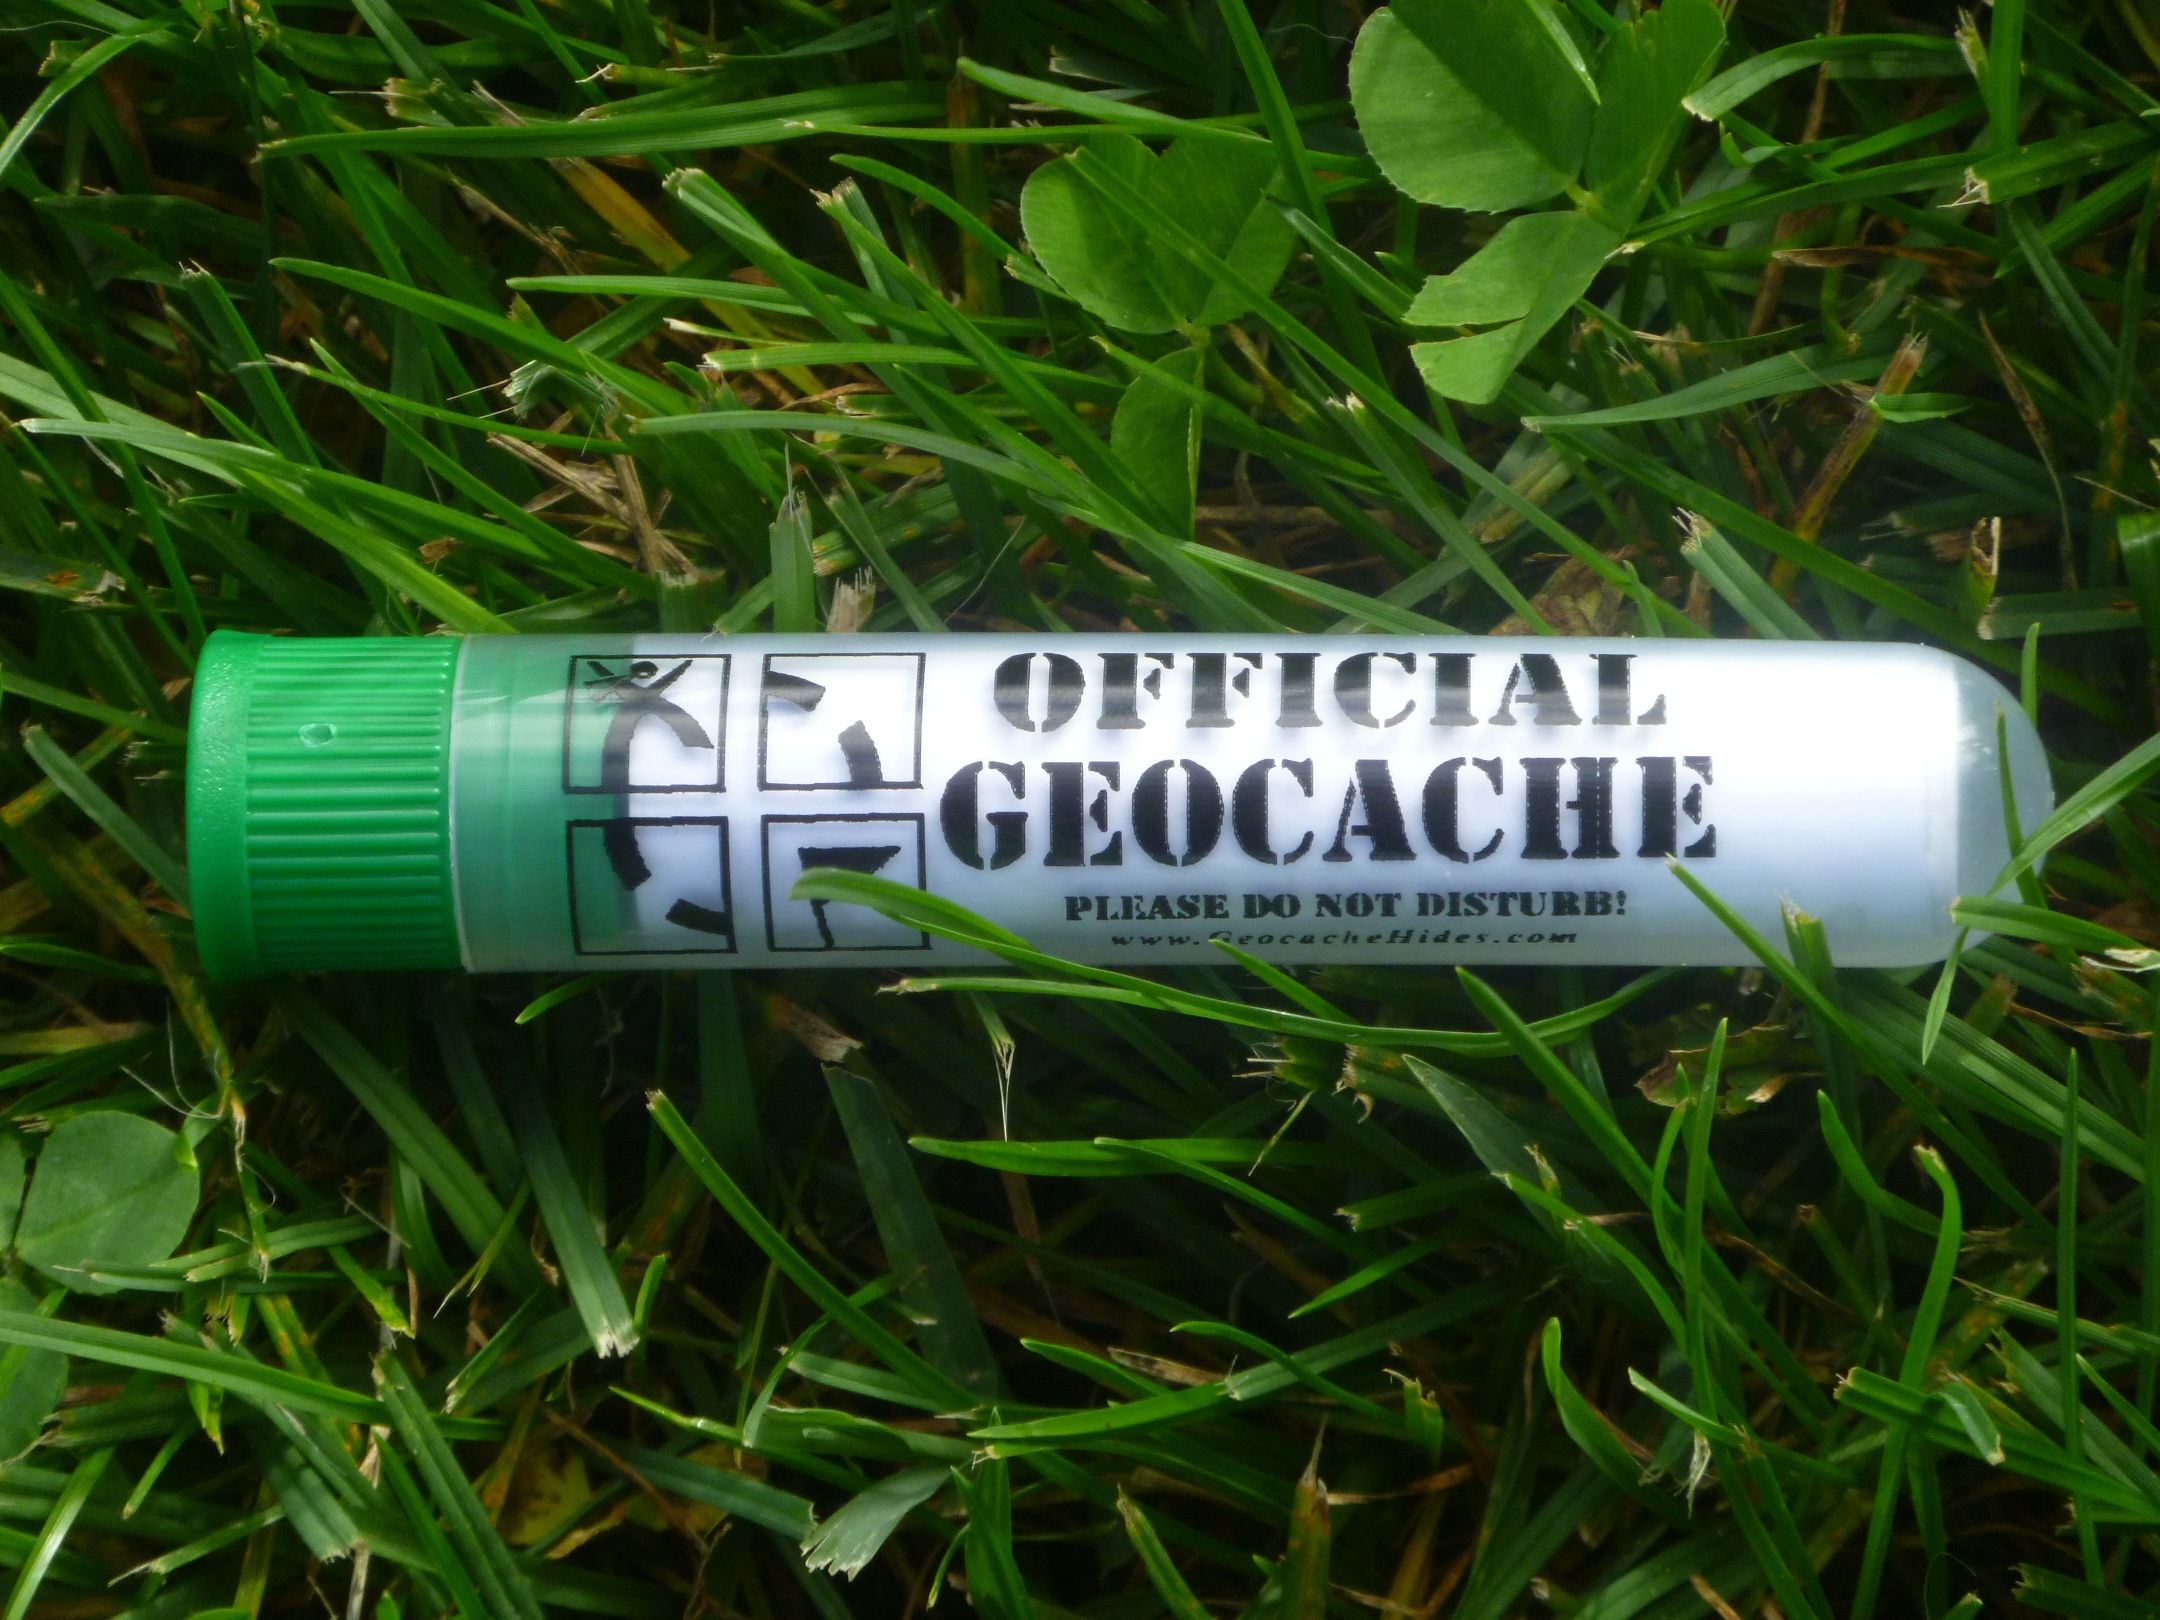 Official Geocache Tube Container